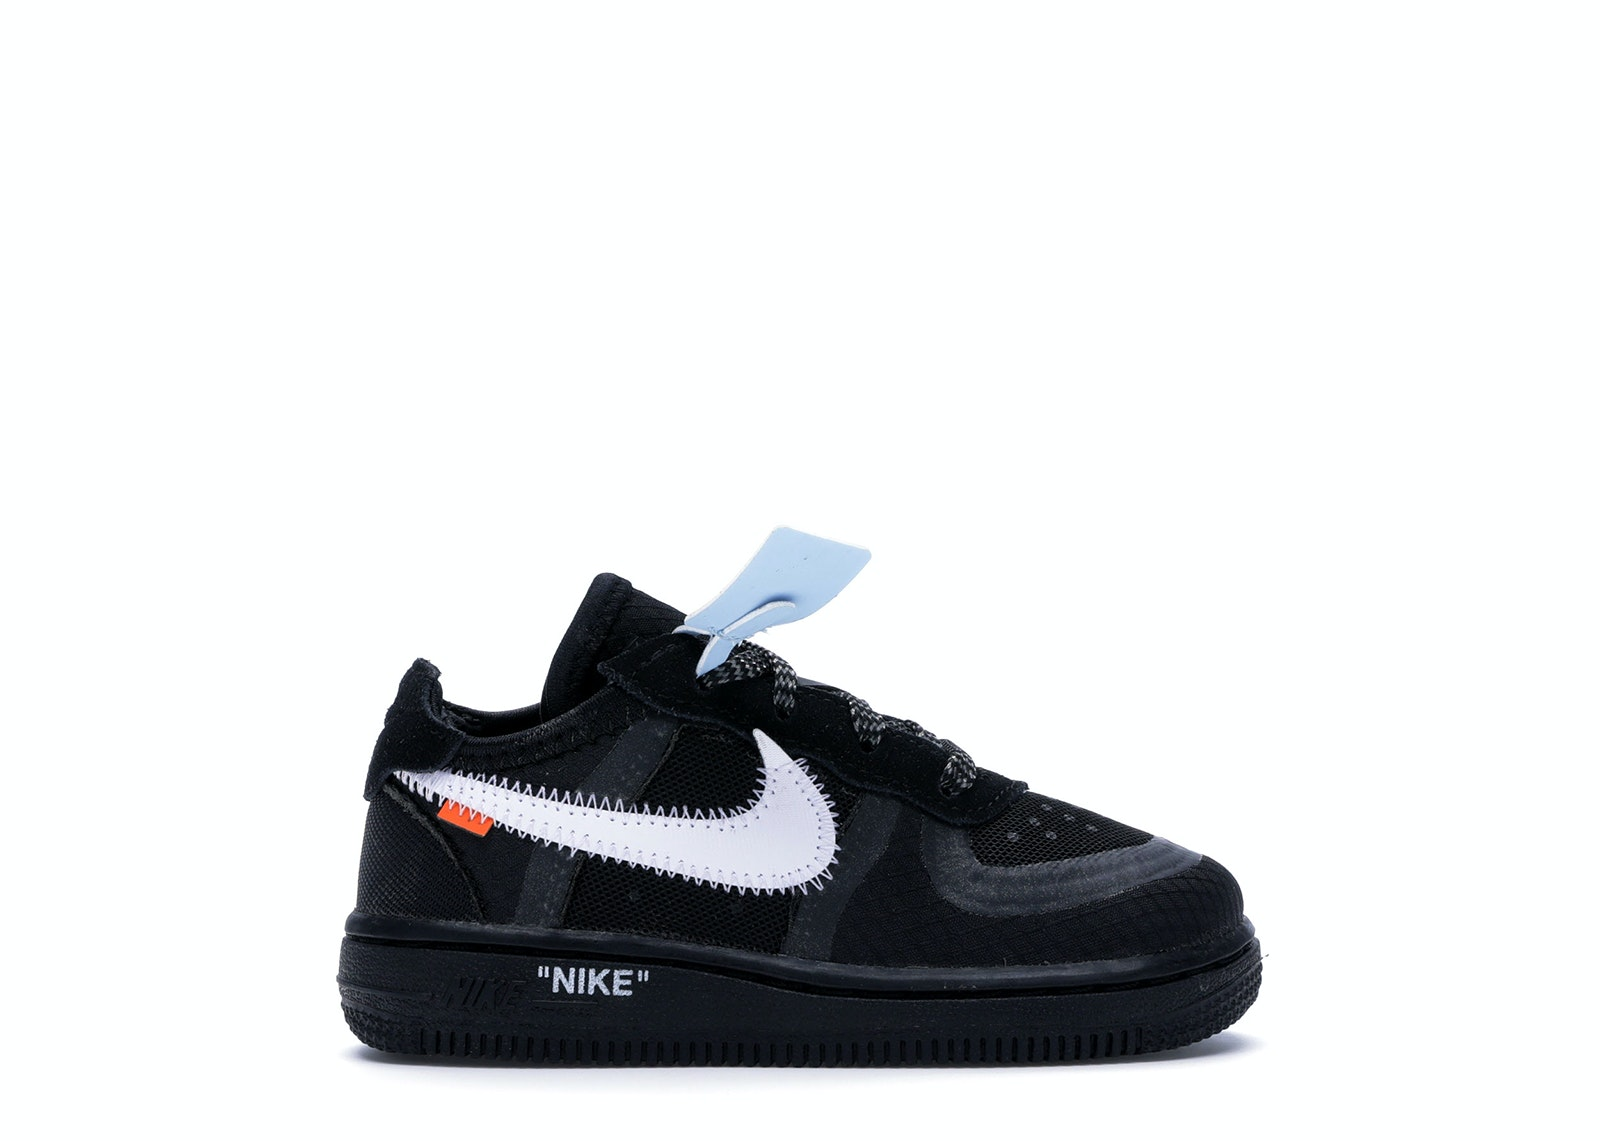 Air Force 1 Low Off-White Black White (TD)